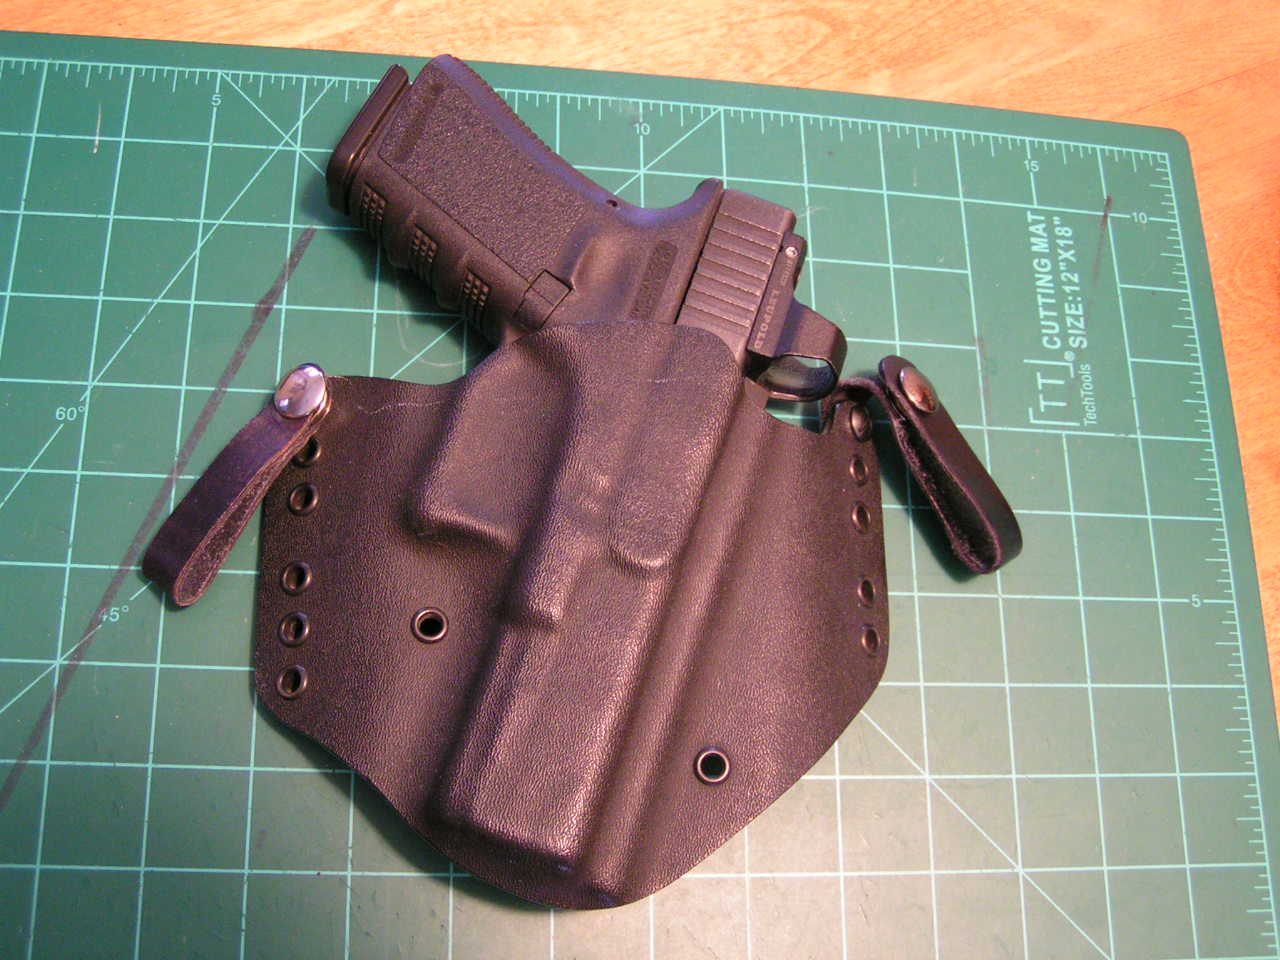 Just Purchased a Glock 26 Gen 4 - Looking for holster for small framed body.-pict0037.jpg